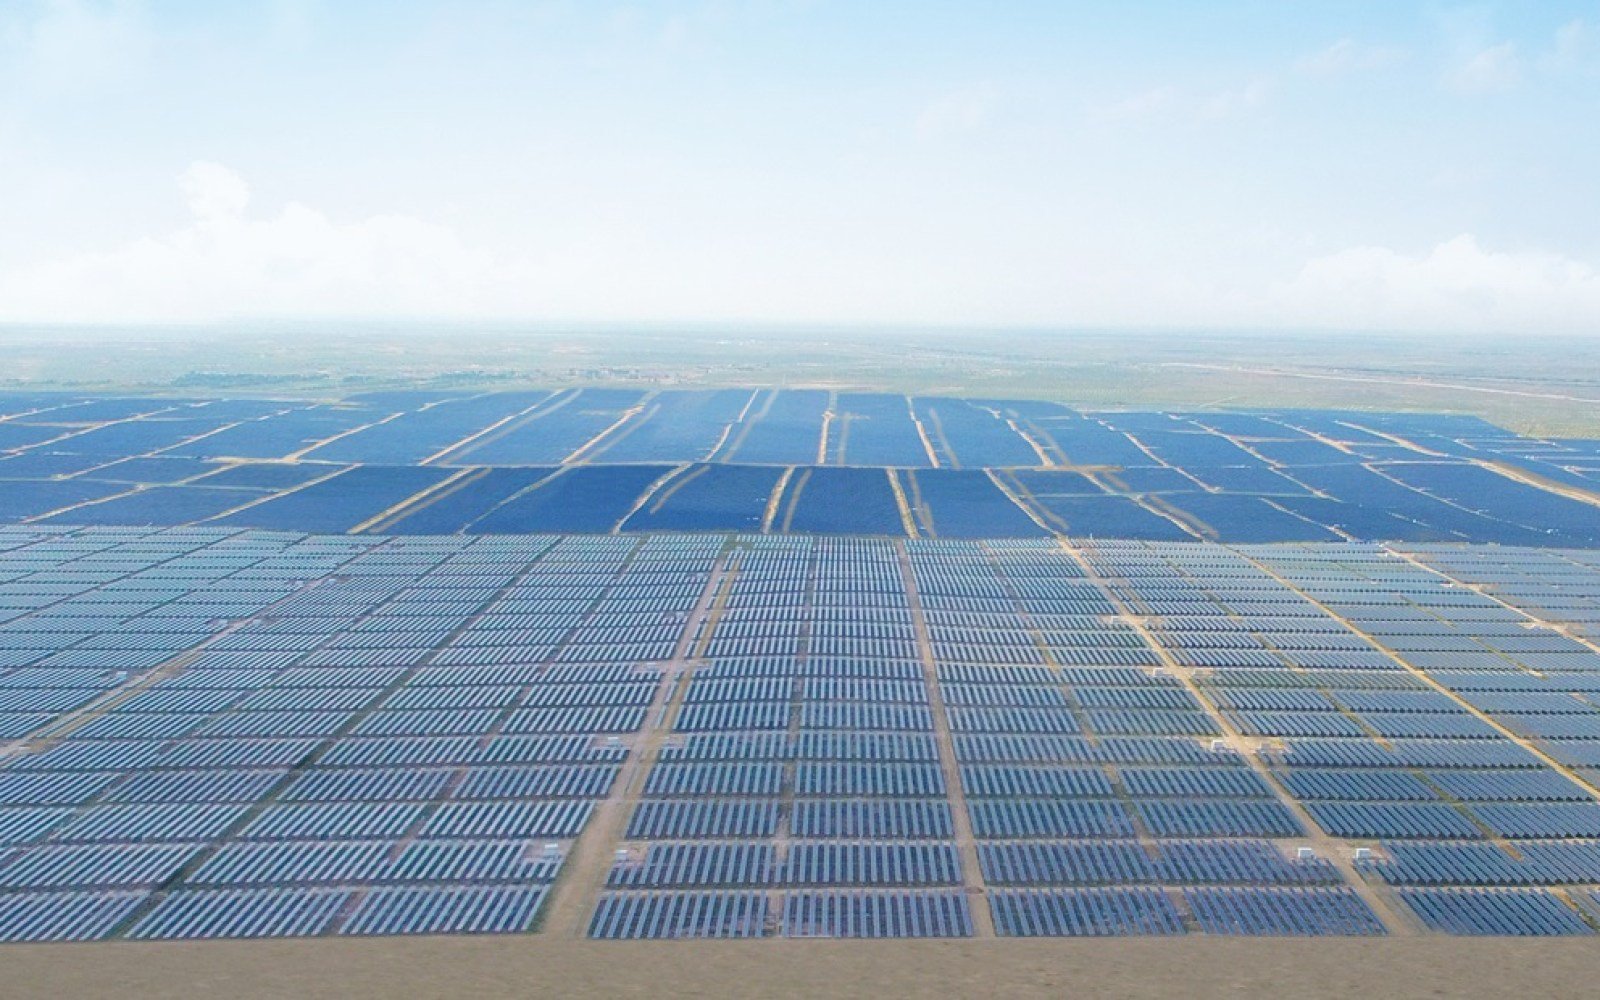 Electrek green energy brief: 1GW Huawei solar plant largest in world(?), why utilities have already lost, and more